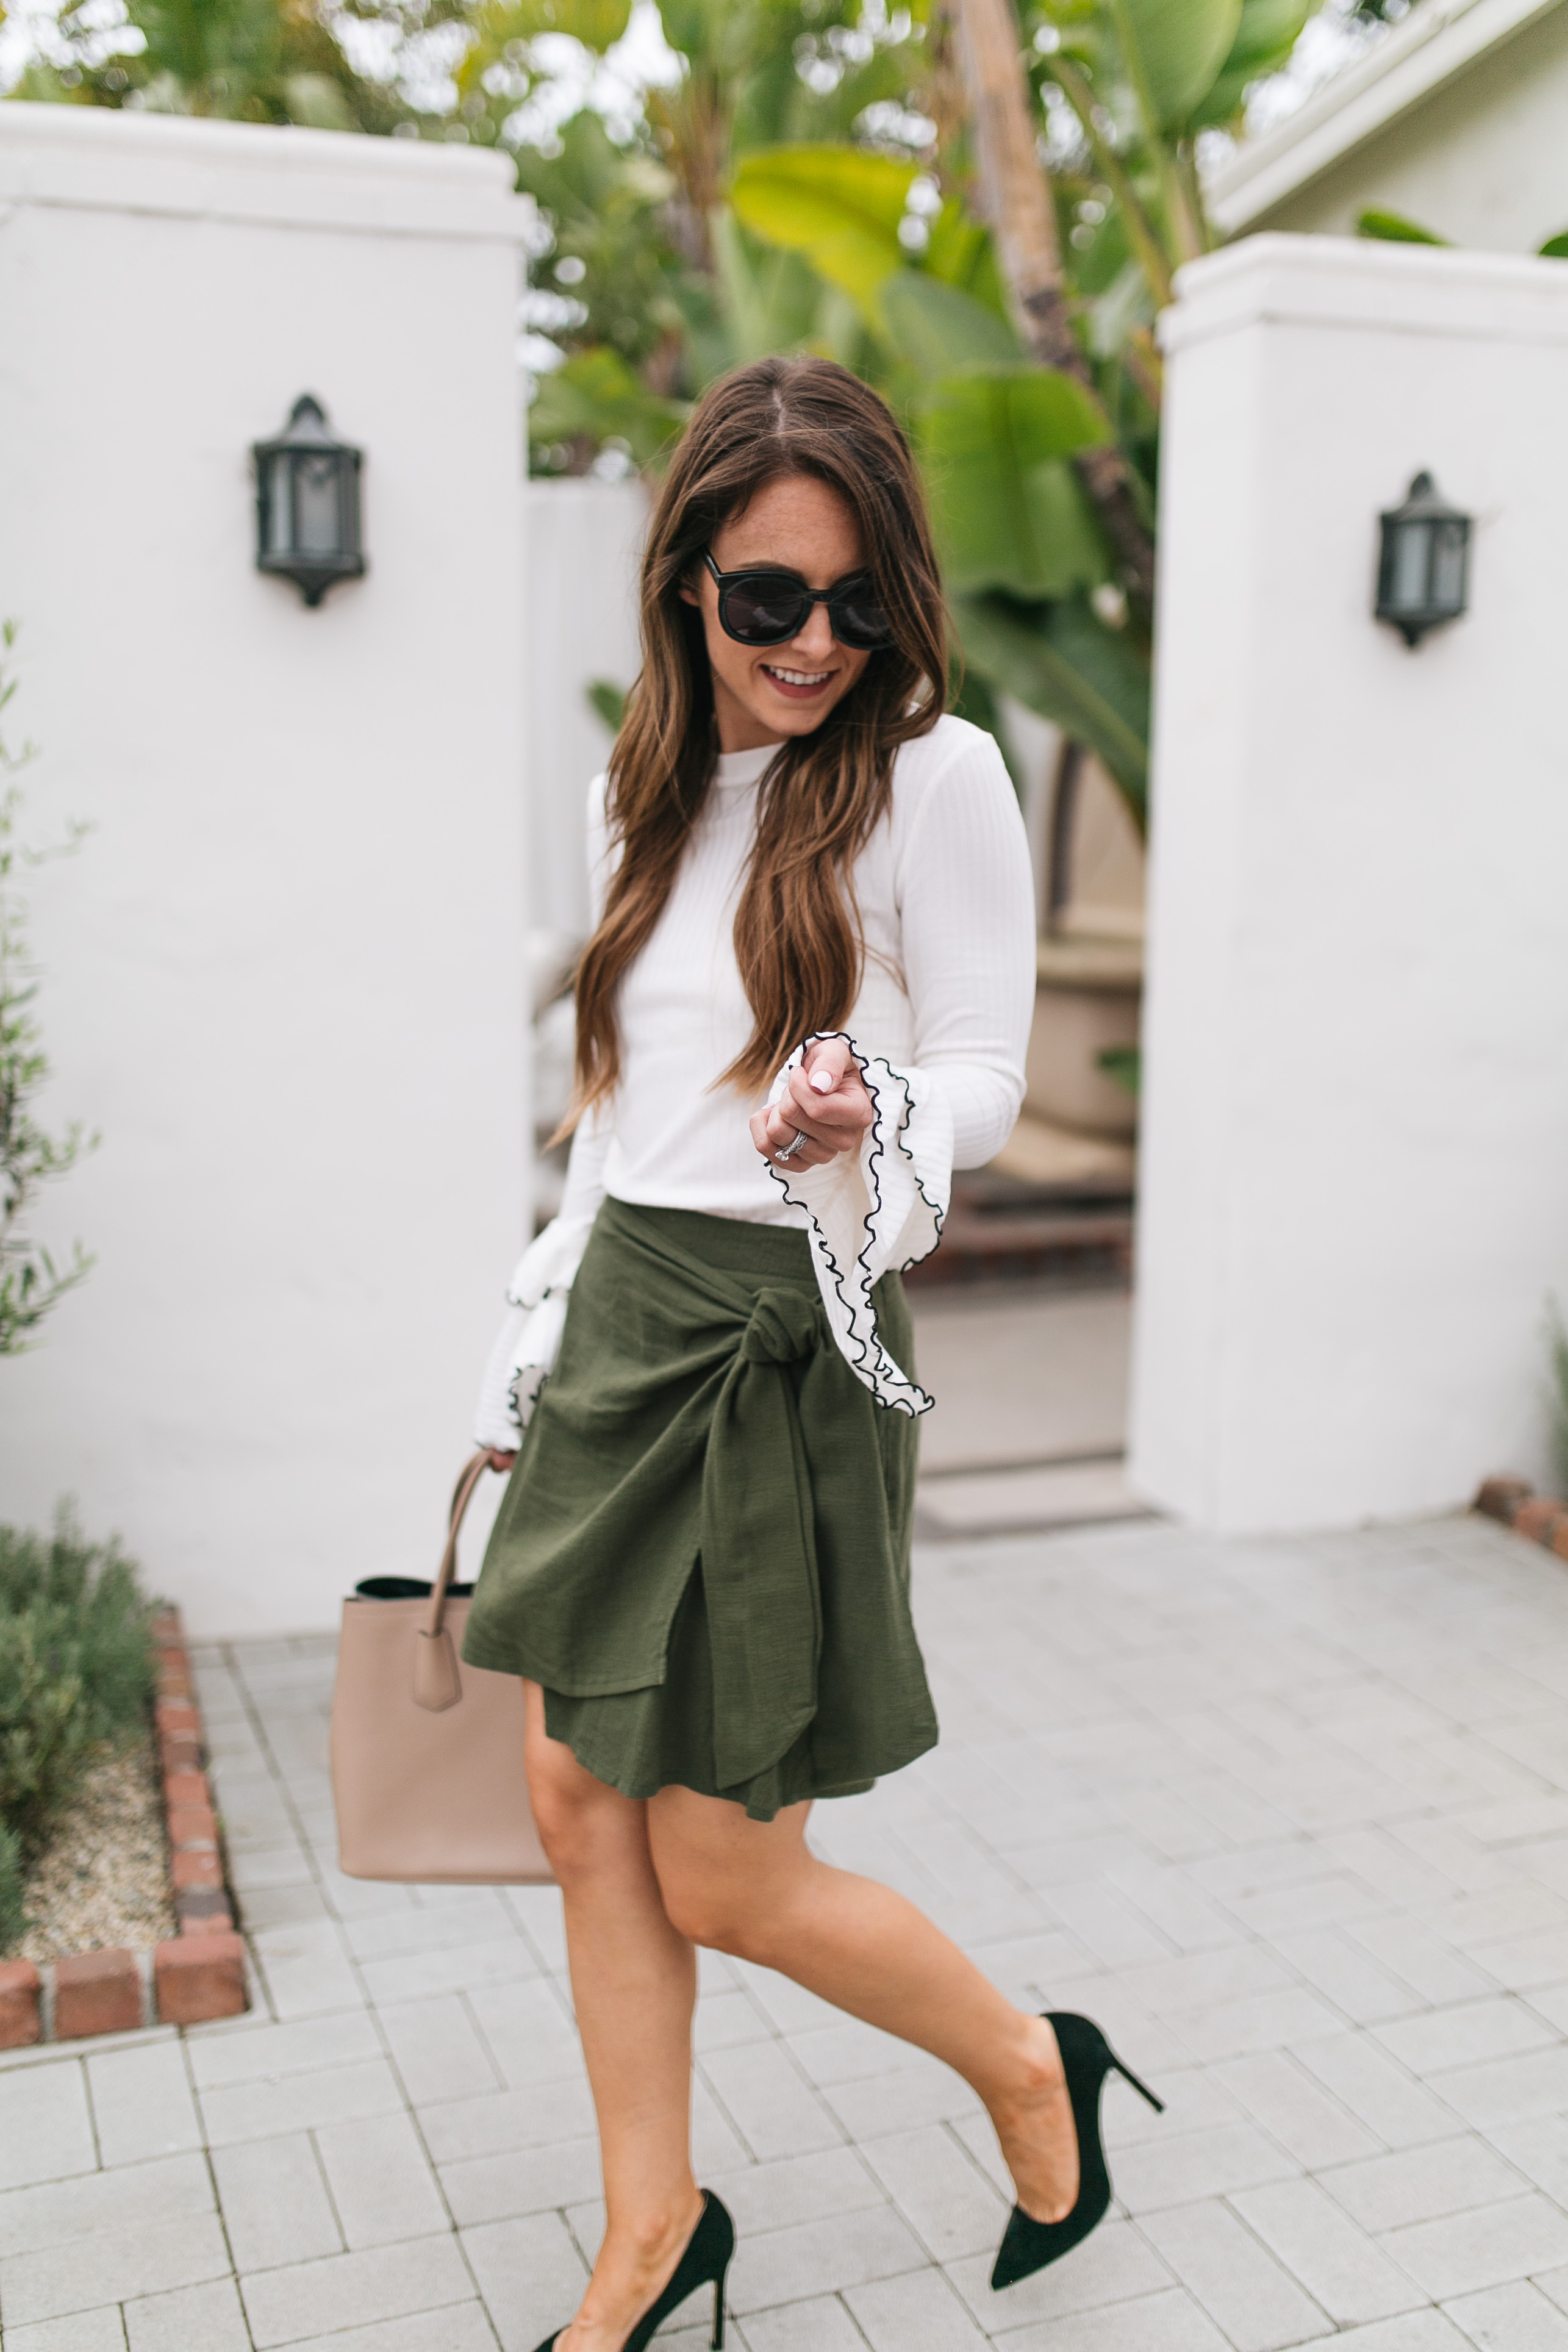 Style blogger Daryl-Ann Denner shares tips on maximizing your work wardrobe and styles an olive wrap skirt and bell sleeve long sleeve tee with black punps